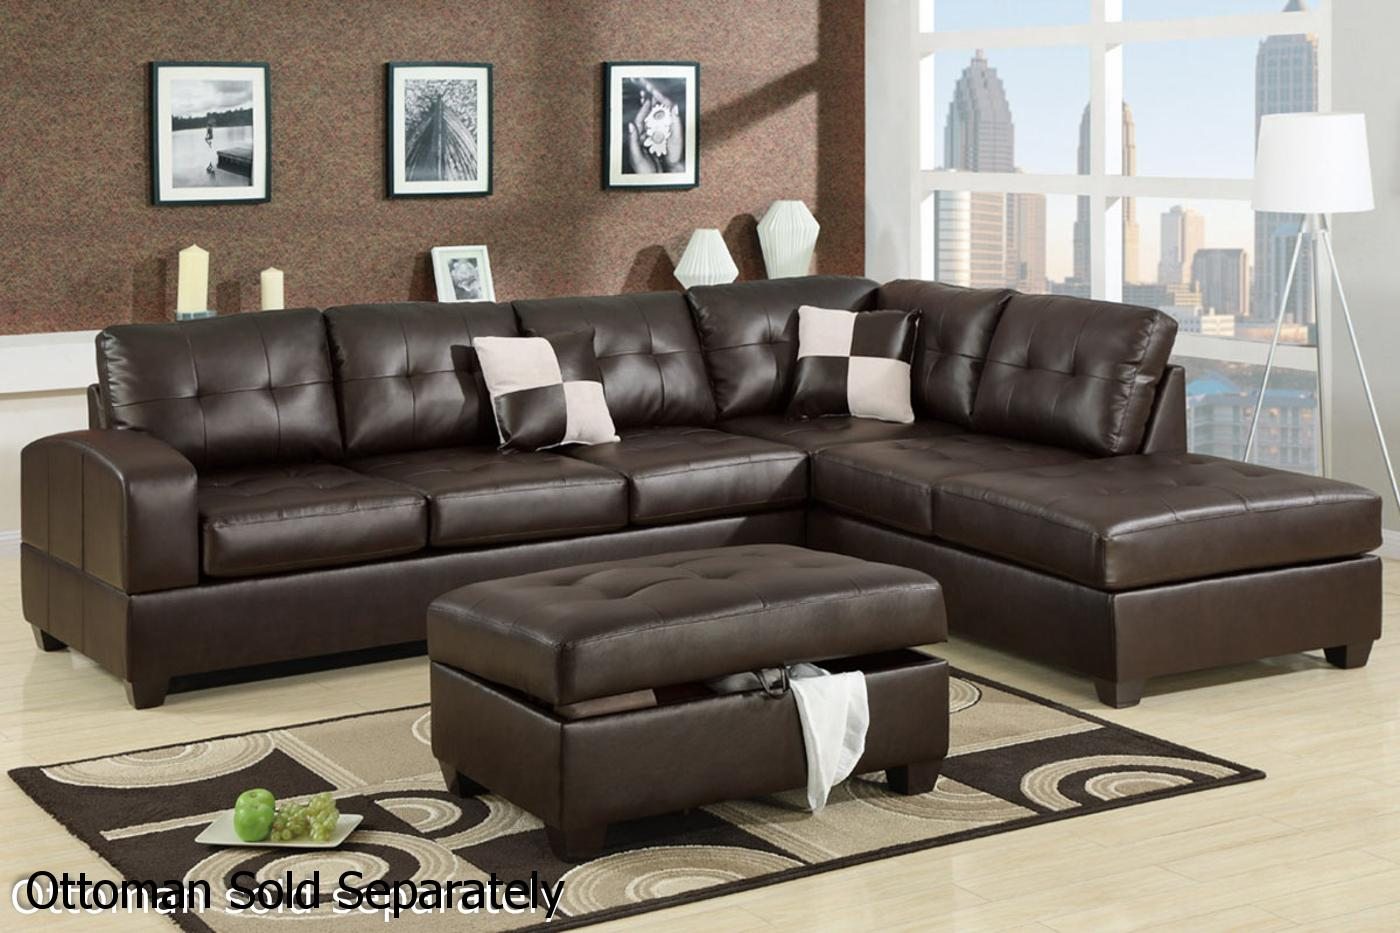 brown leather sectional couches. Reese Brown Leather Sectional Sofa Couches L